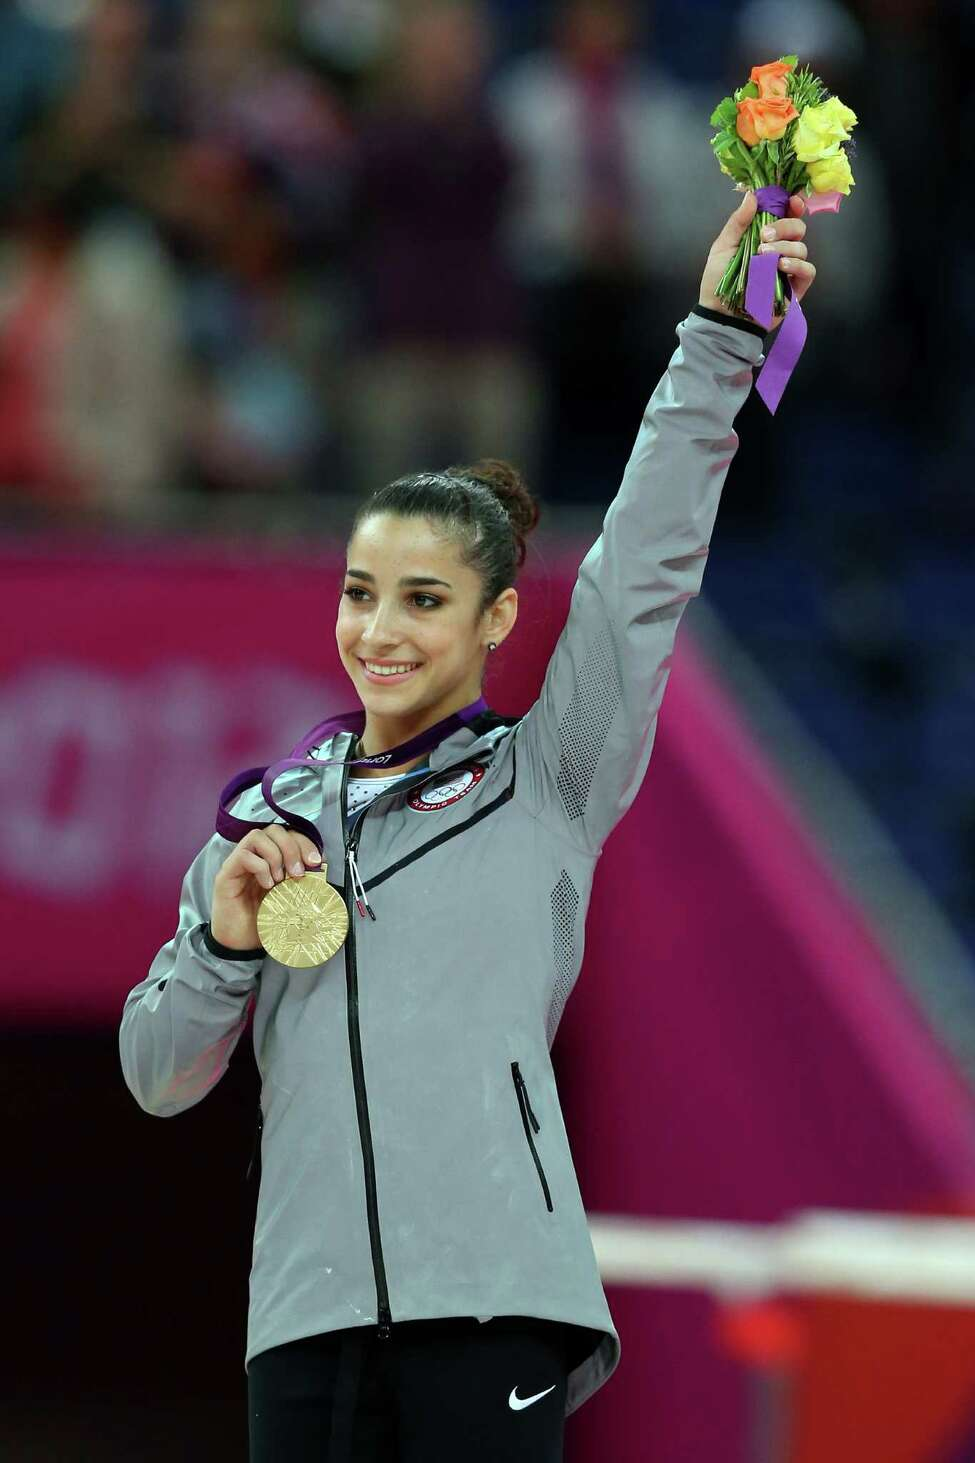 Did Aly Raisman Confirm Her Retirement? The Gymnast Wont